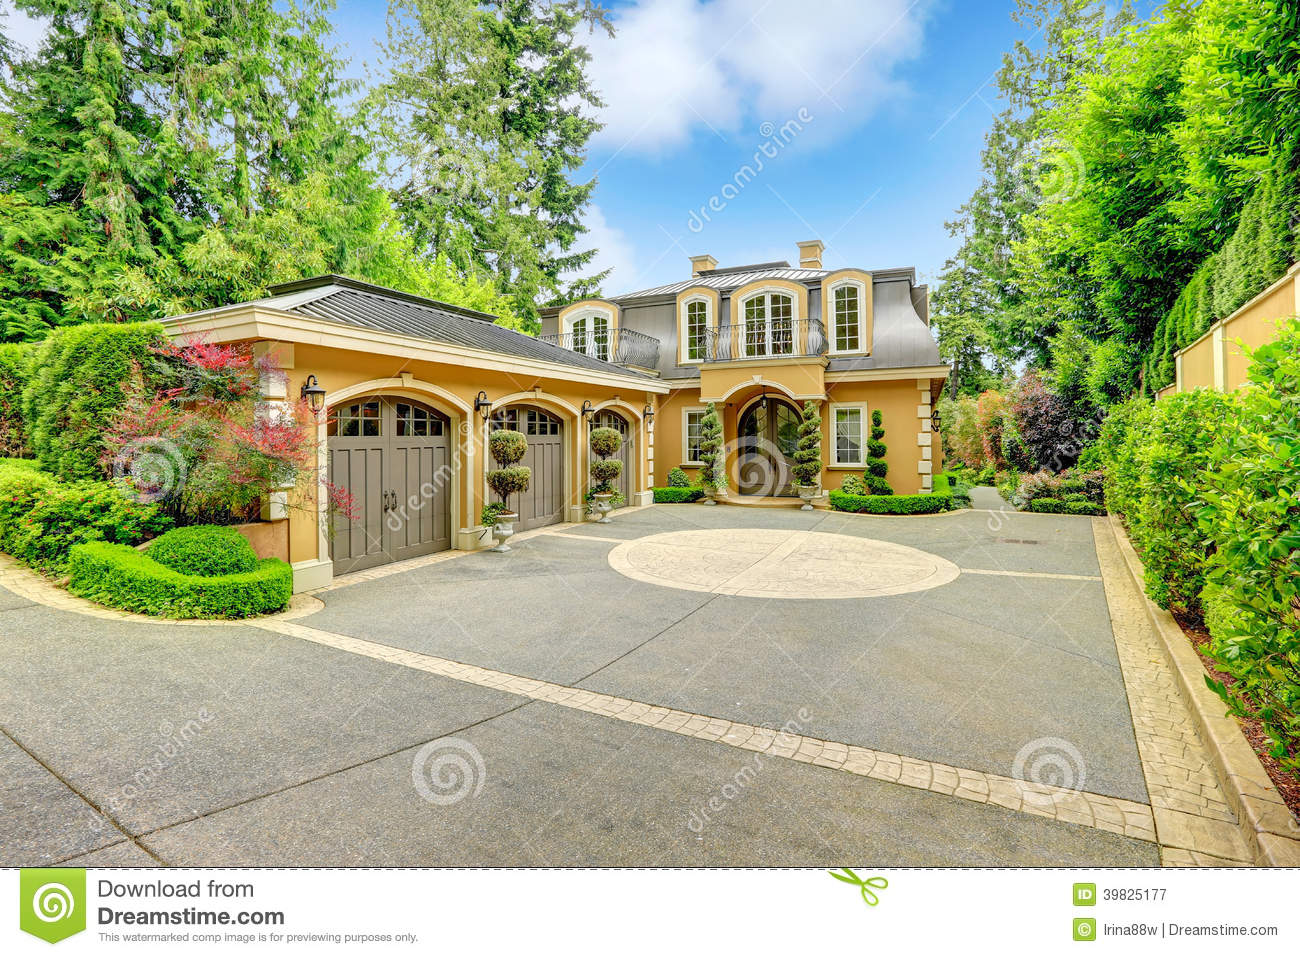 Luxury house royalty free stock photo for Free luxury home images